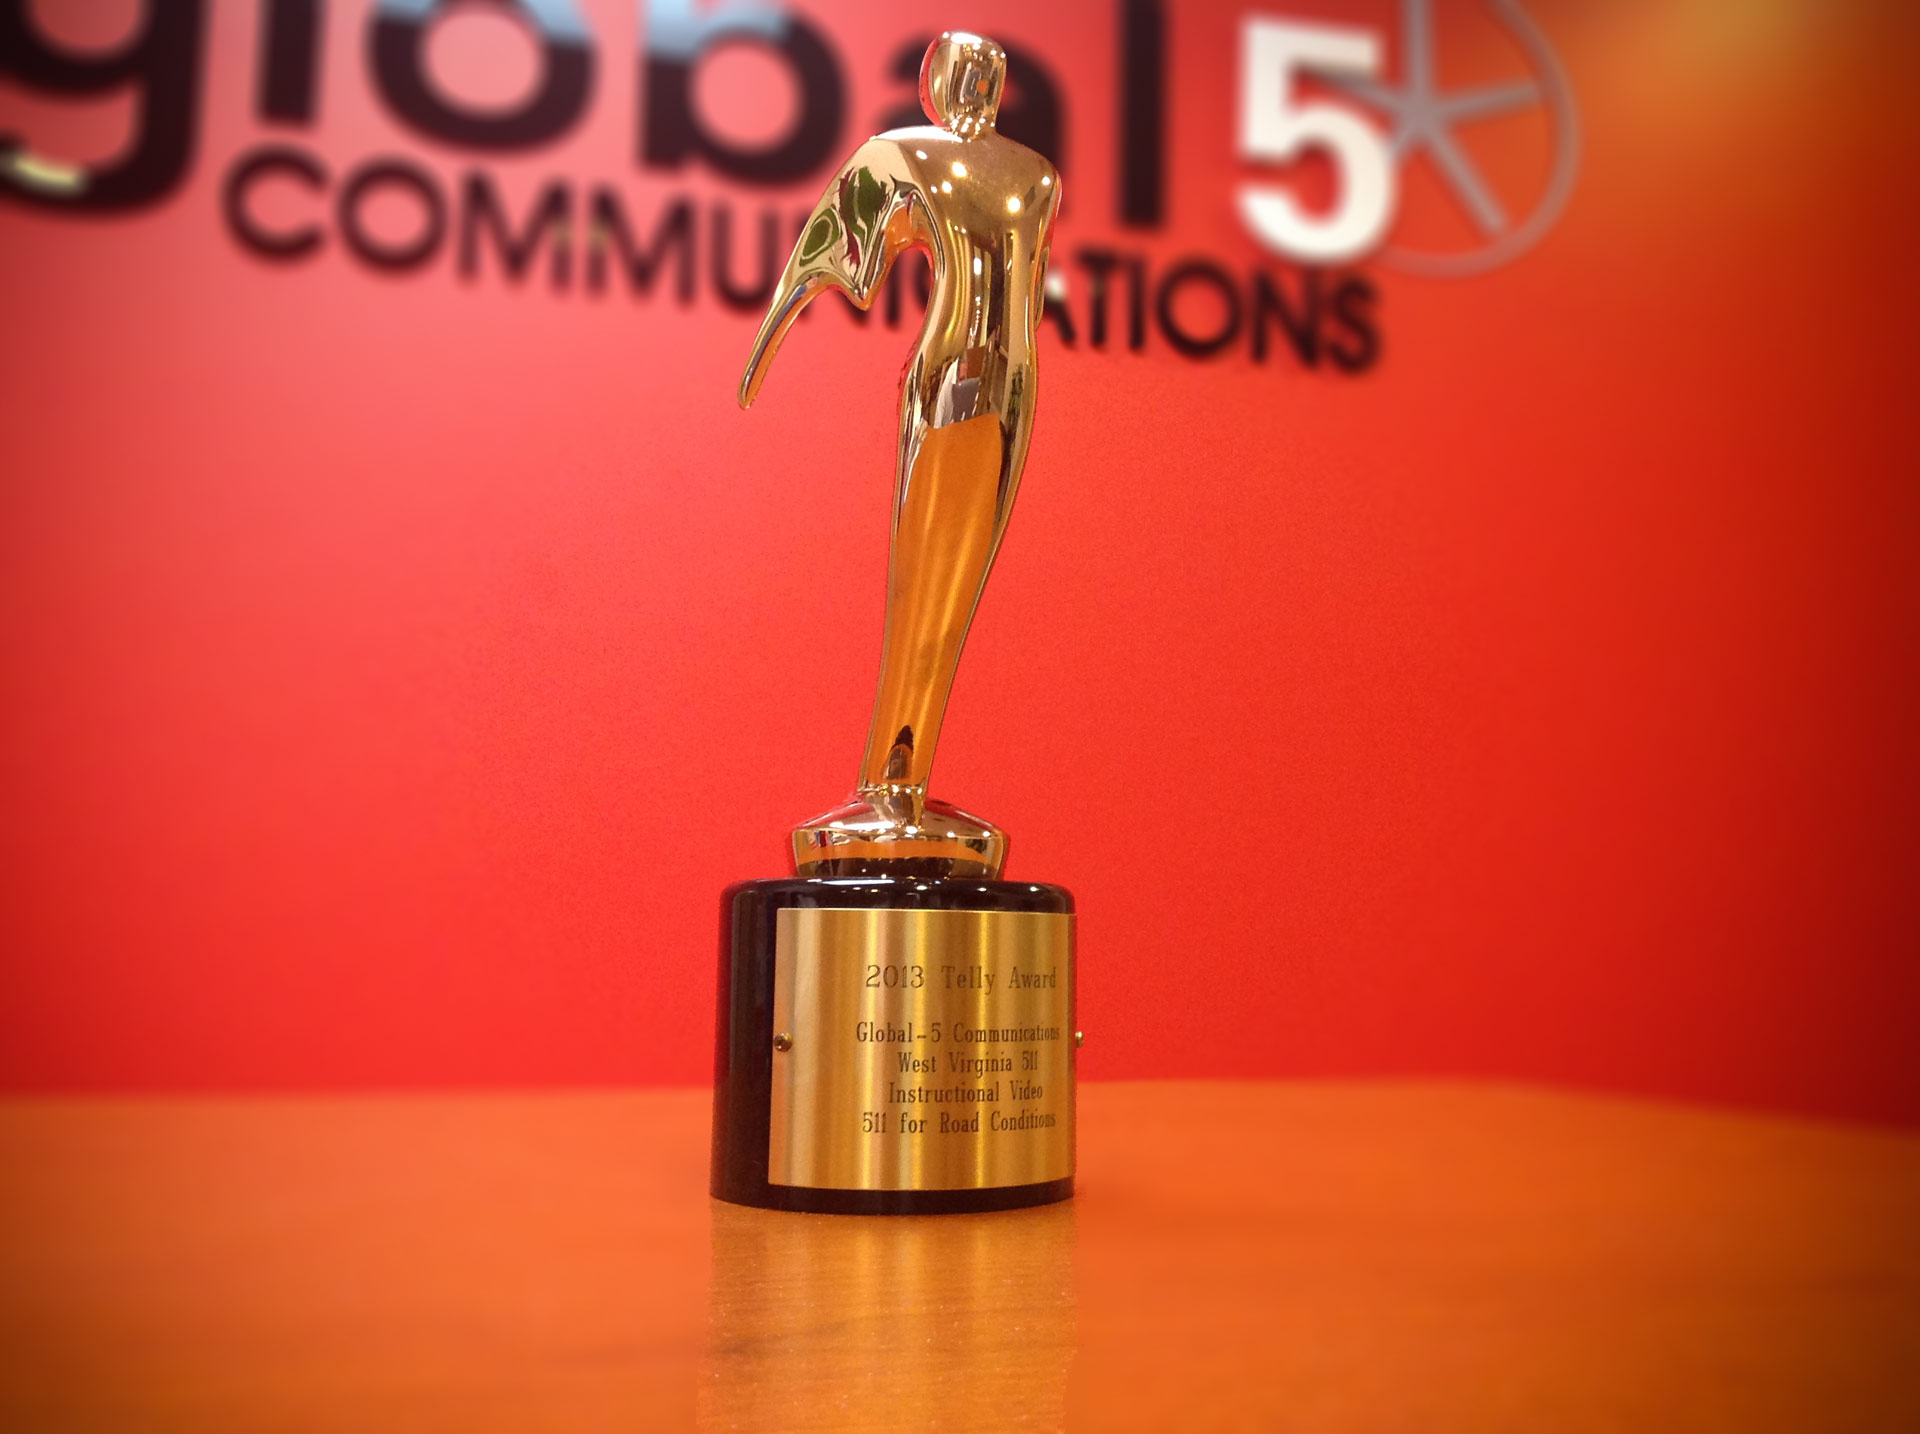 34th Annual Telly Awards Congratulates Global-5 with Bronze Telly Award